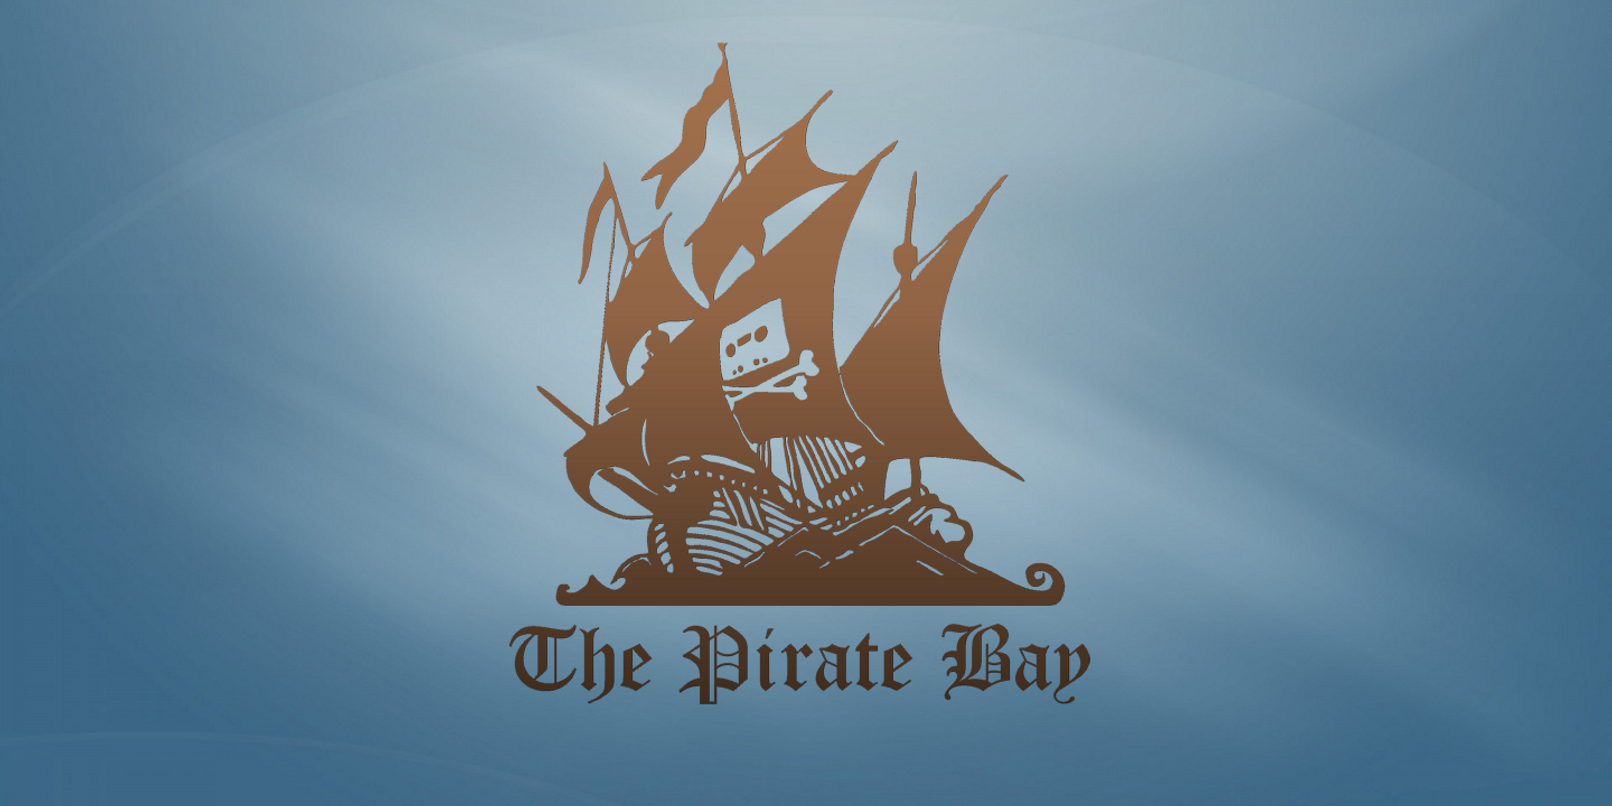 RT @TheNextWeb: Swedish court refuses to force ISPs to block access to The Pirate Bay https://t.co/7Y9th2t7Uw https://t.co/A61ECoJKH3